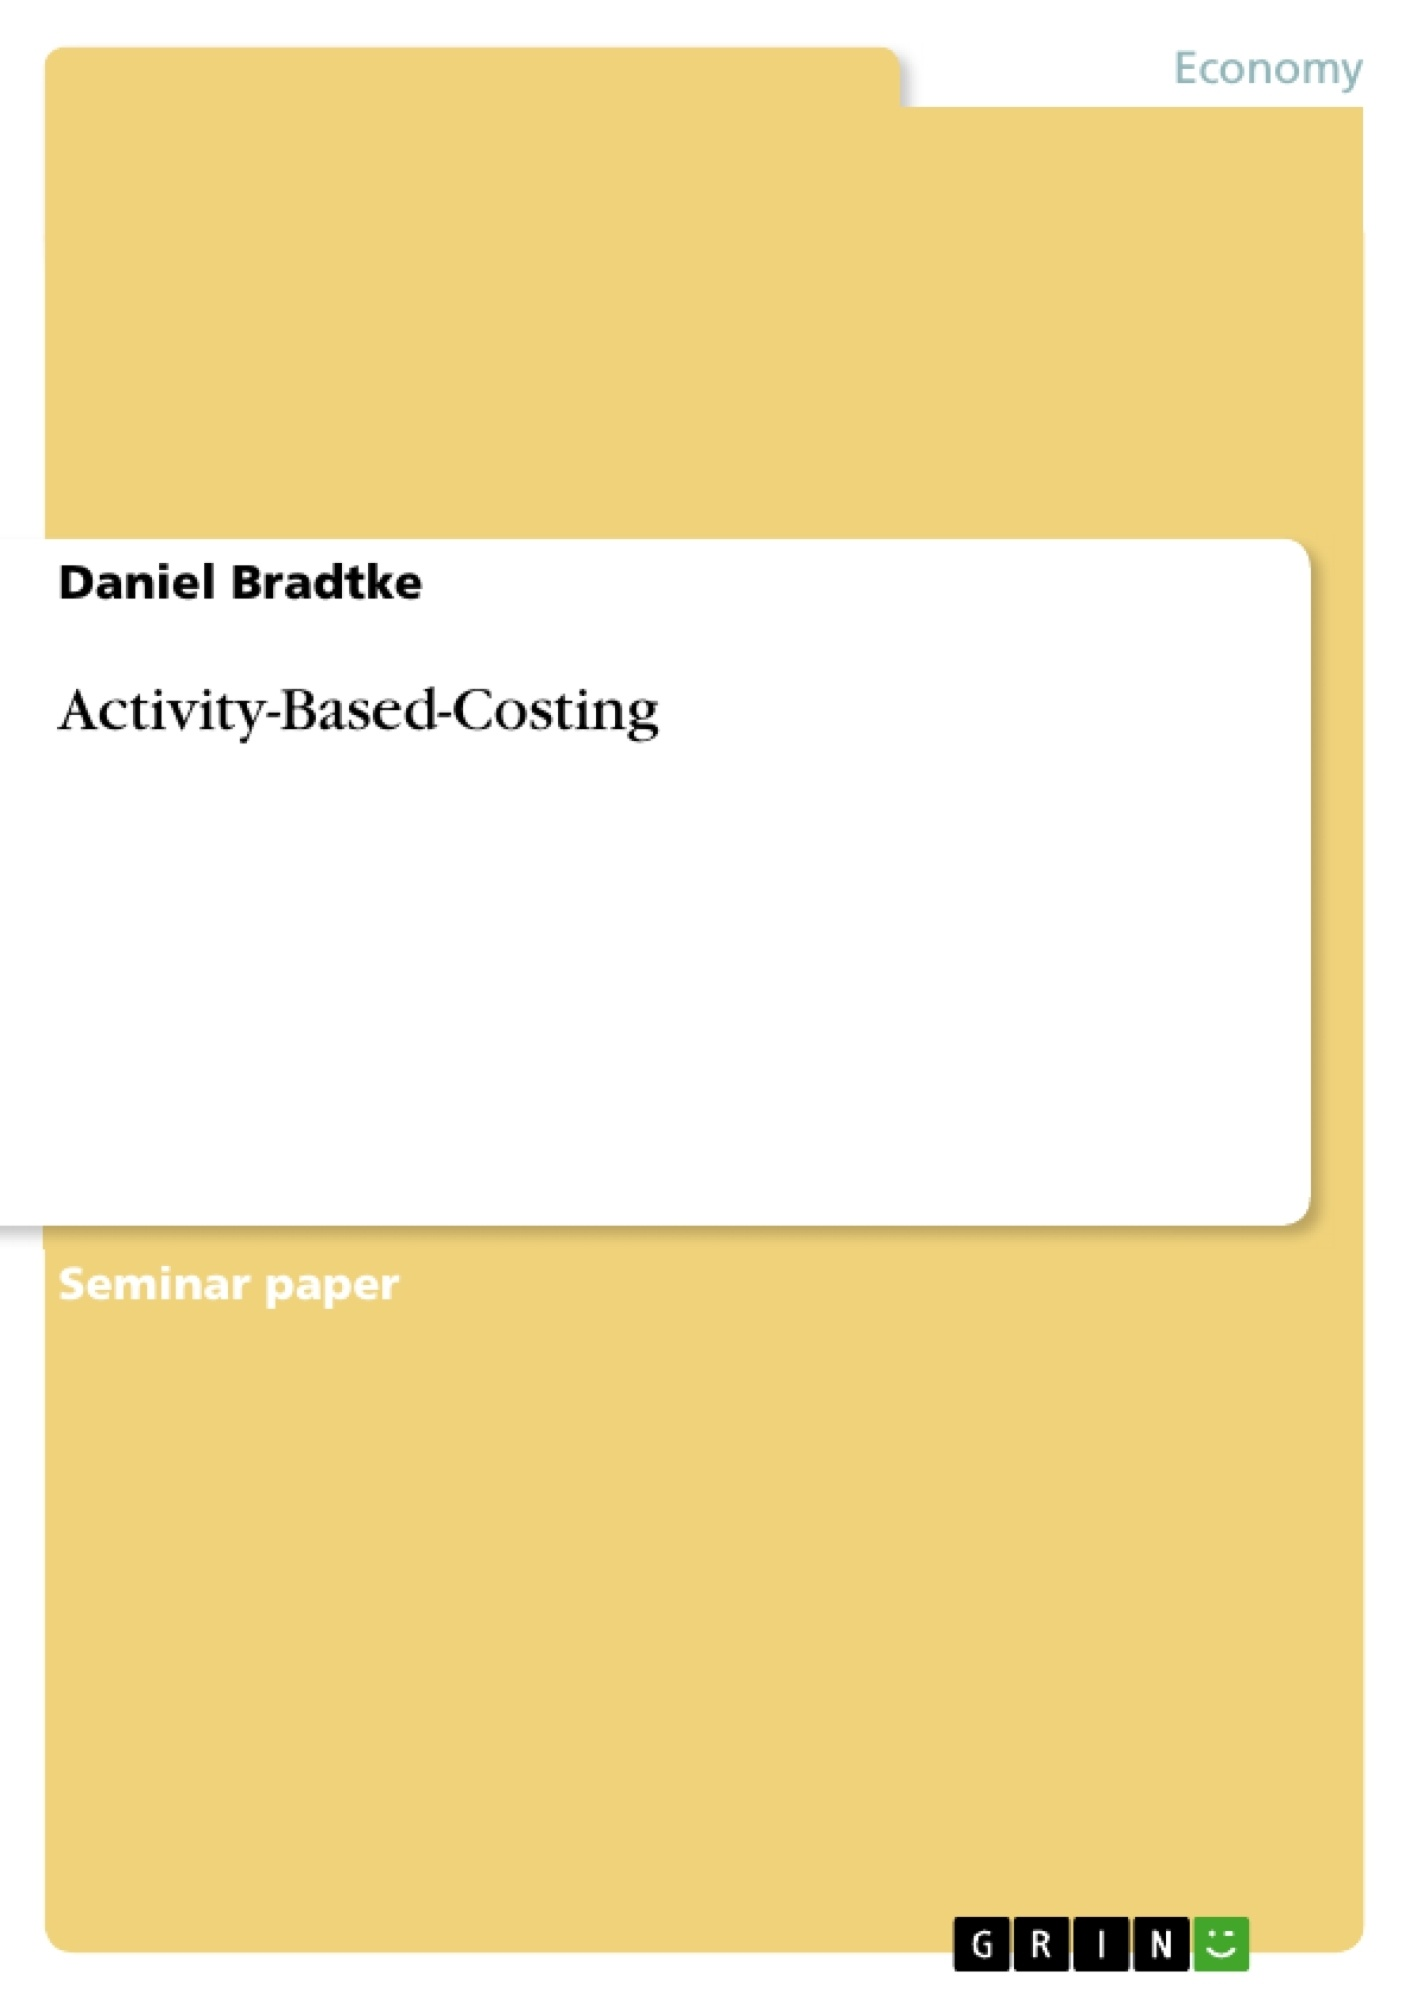 essay activity based costing